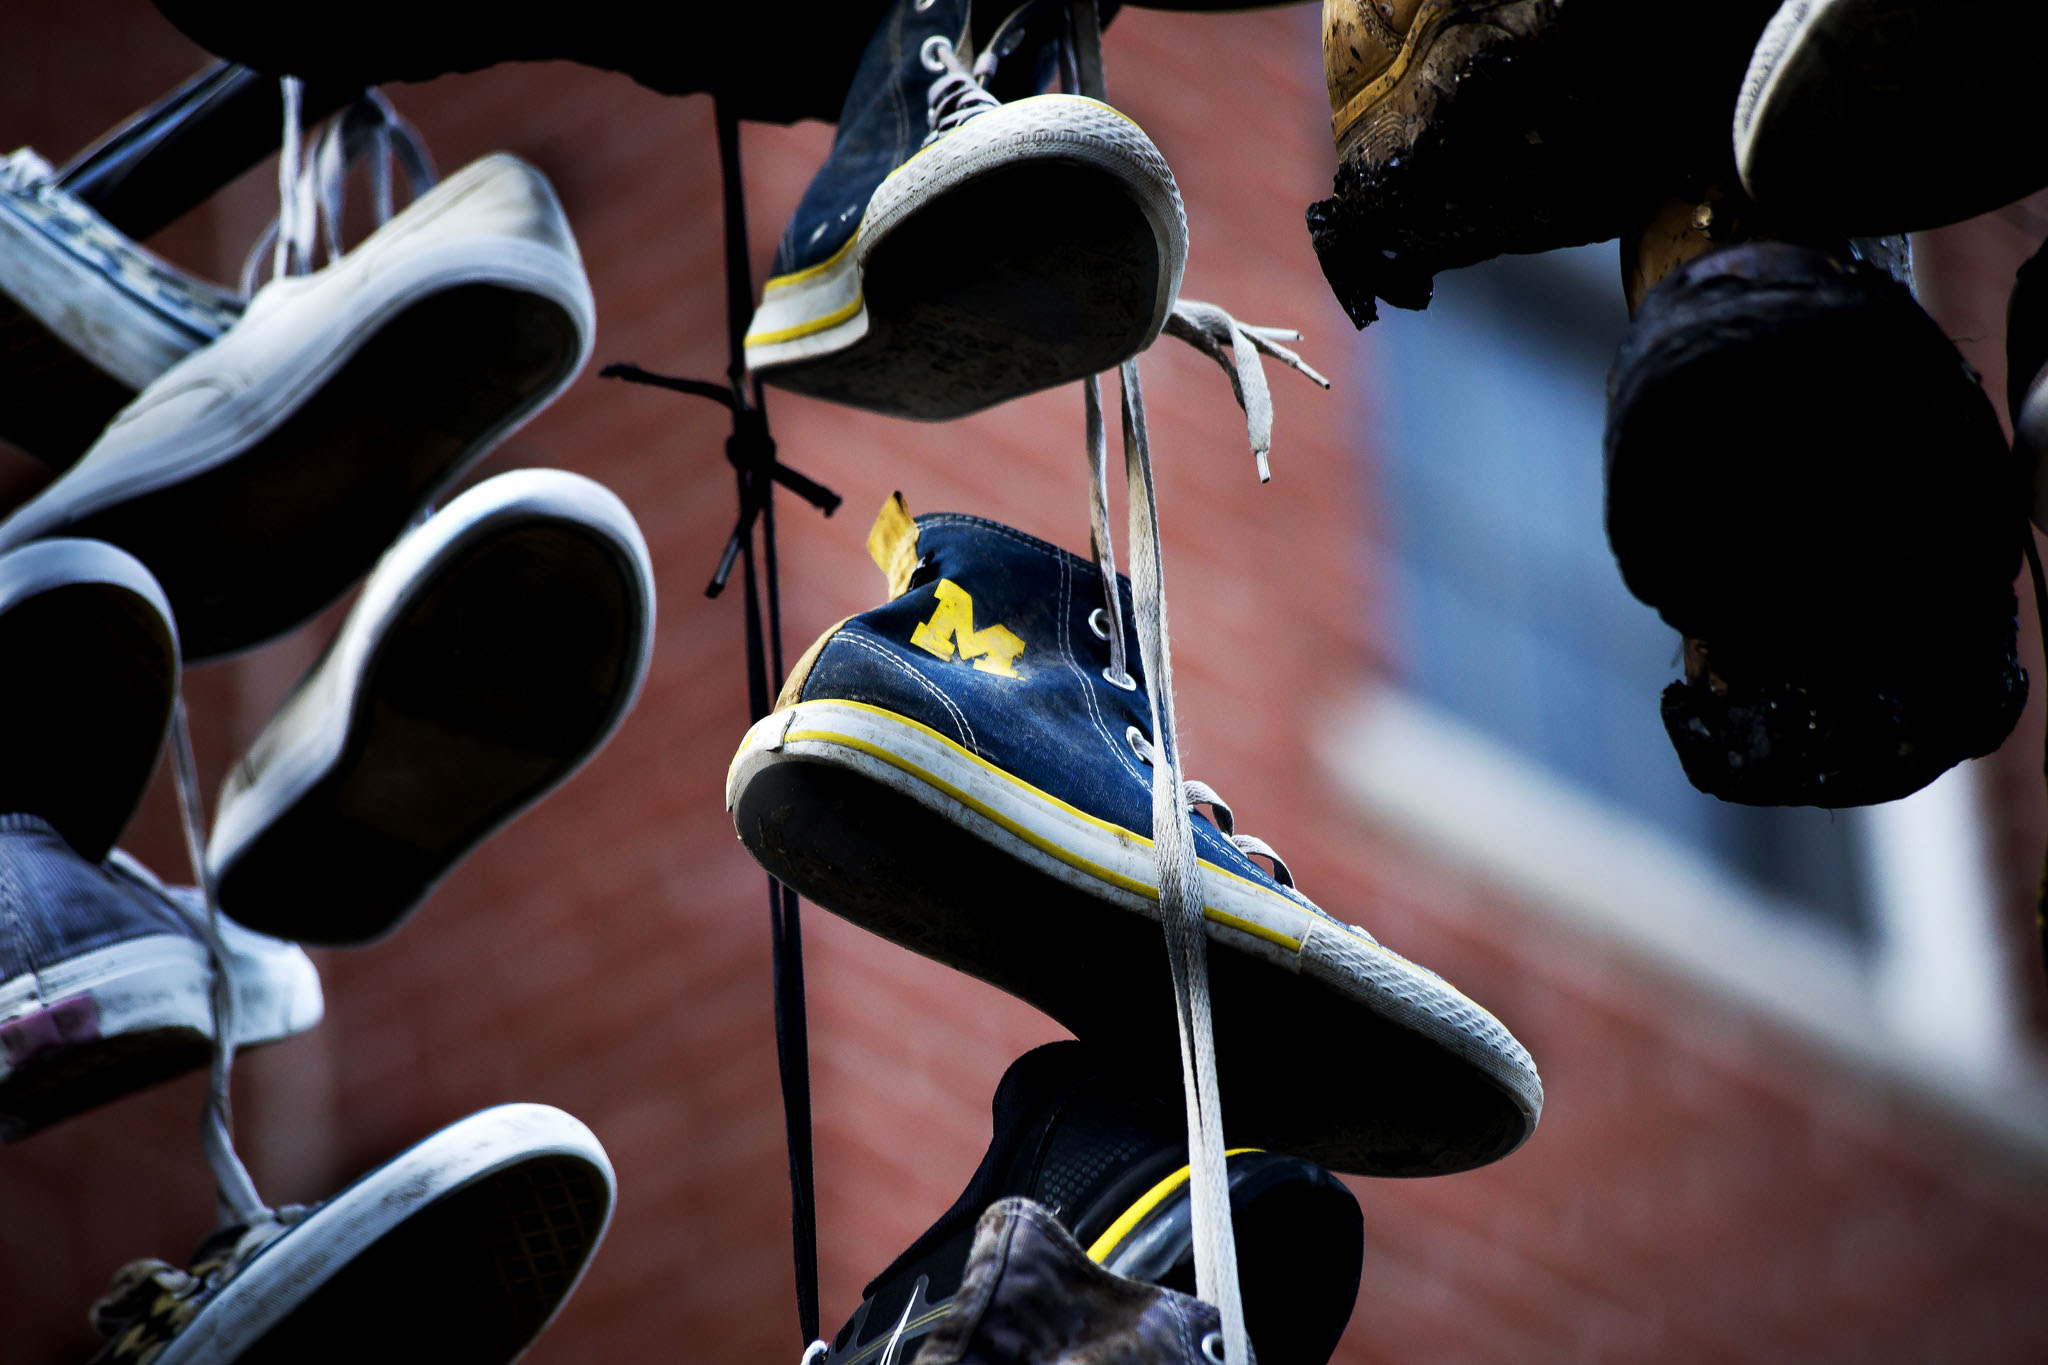 A photograph of shoes hanging on a power line.